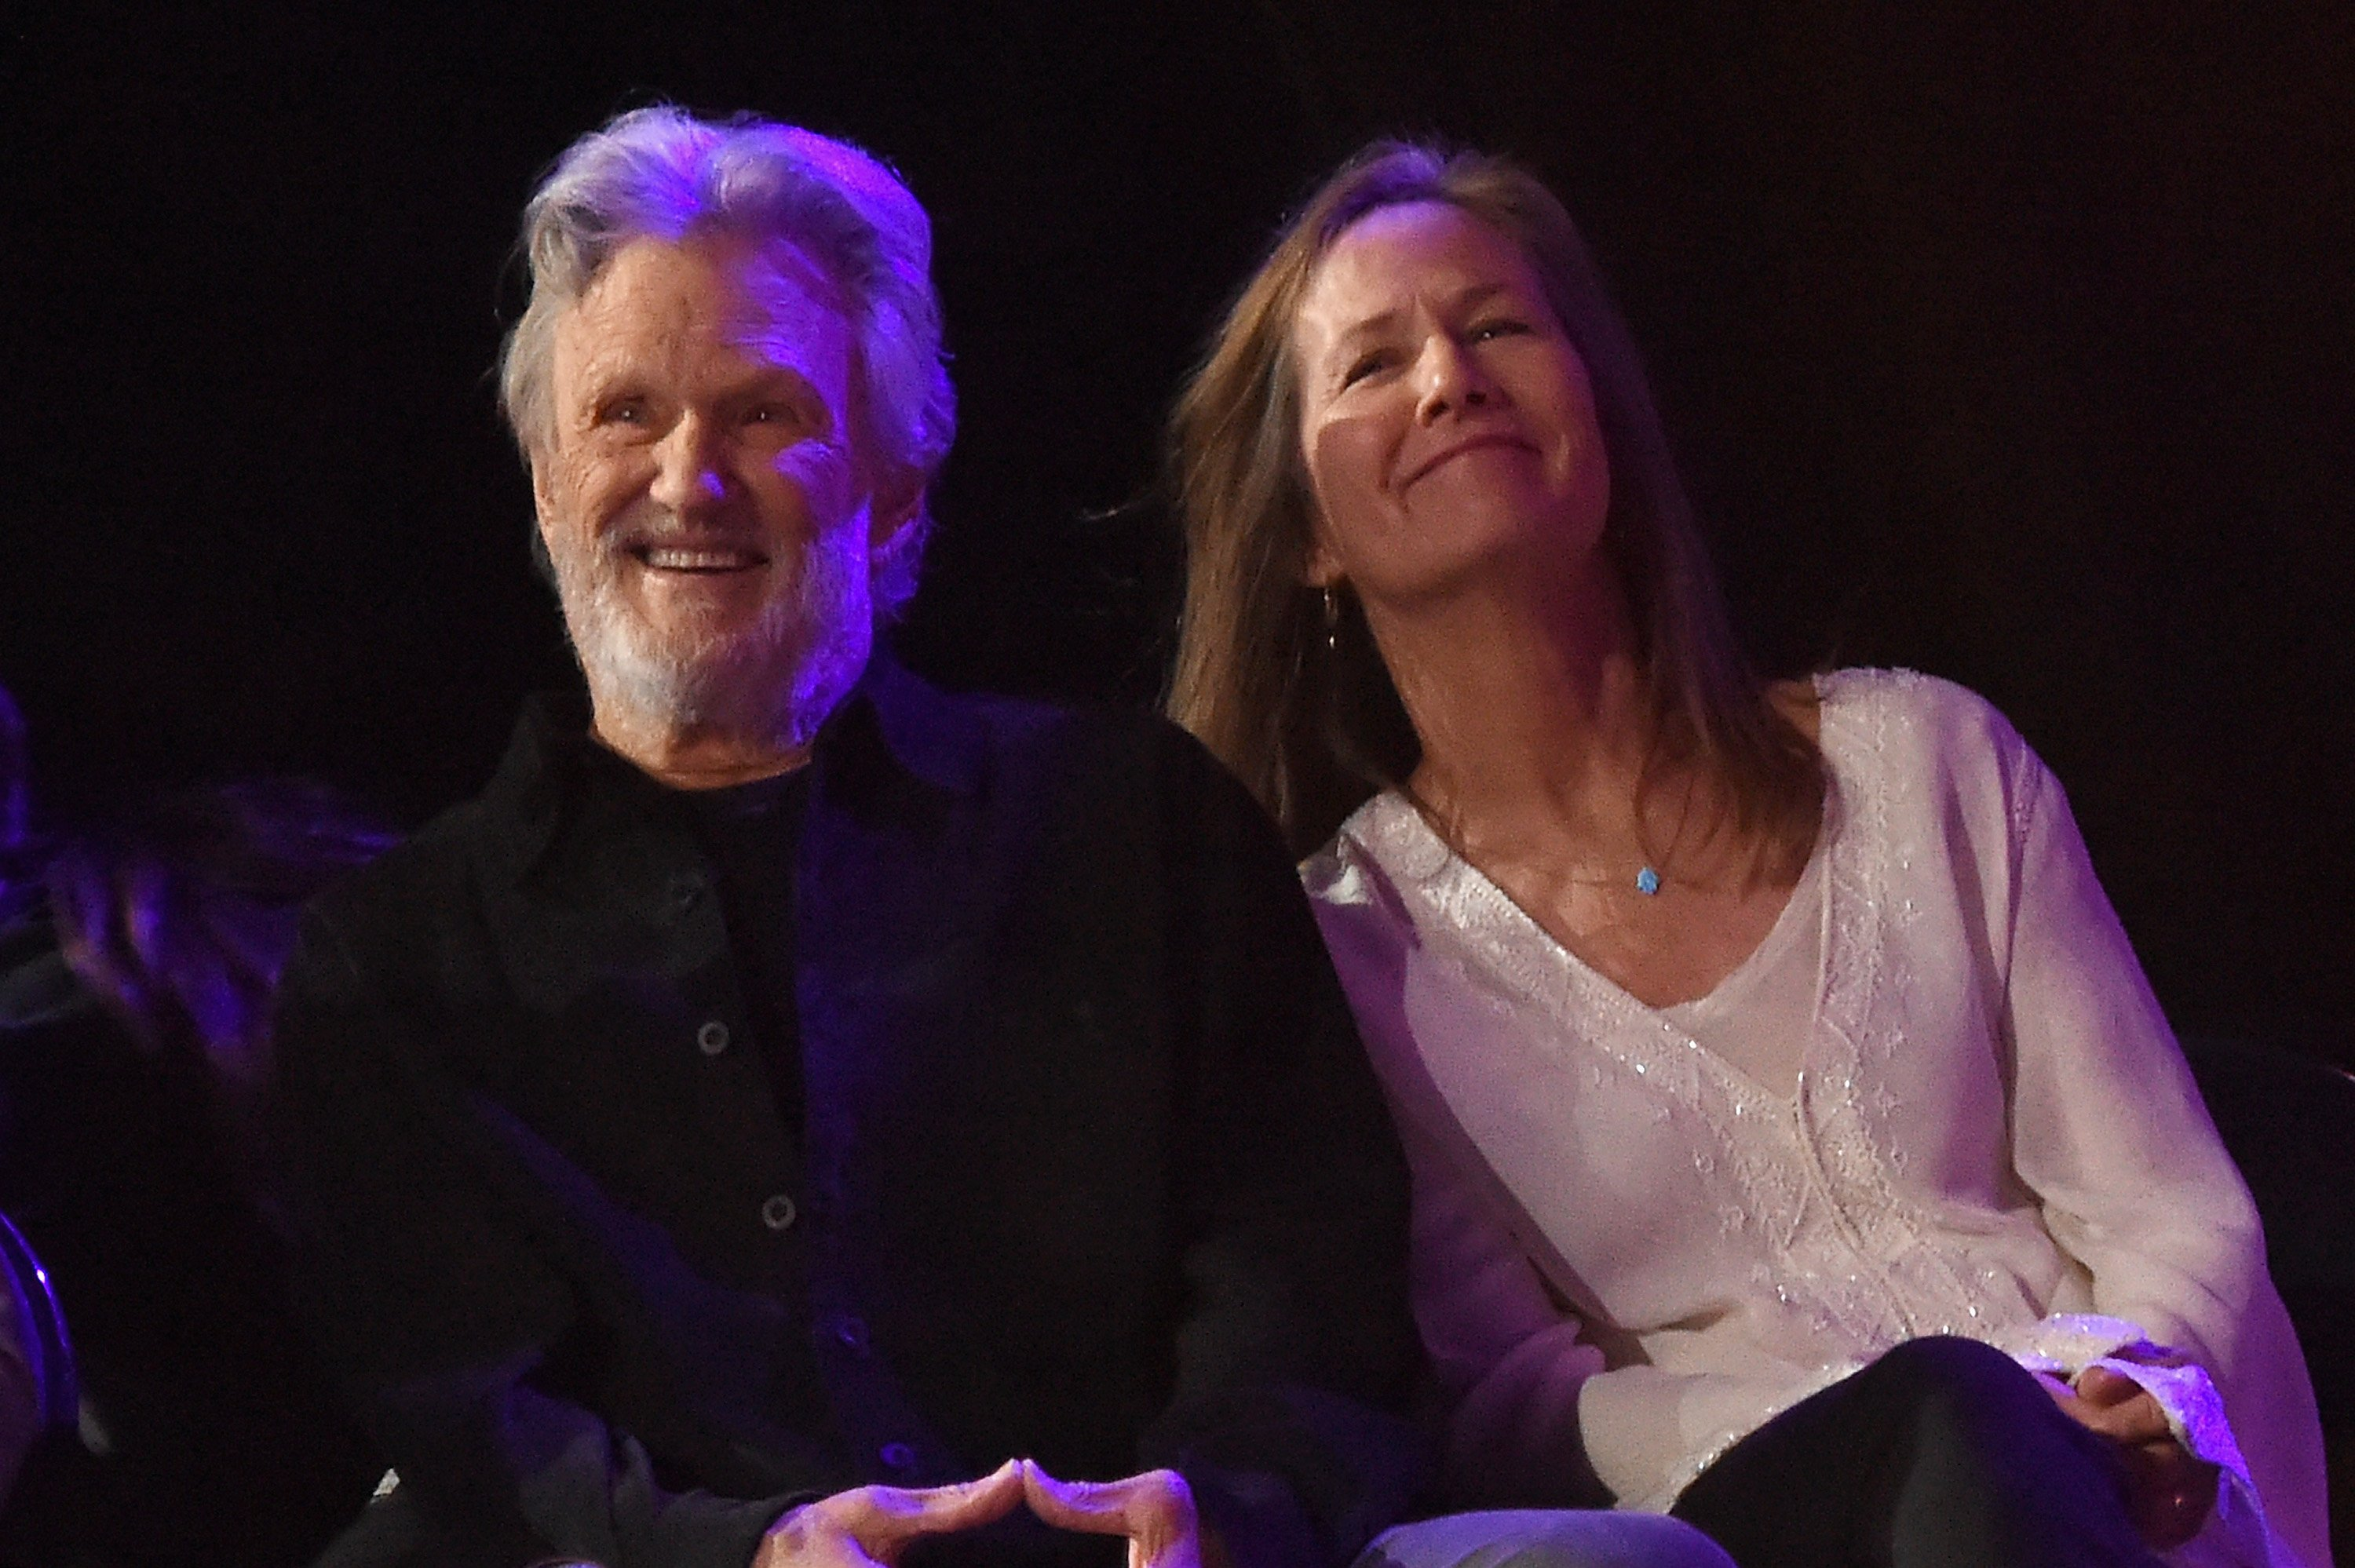 Kris Kristofferson and Lisa Meyers attend The Life & Songs of Kris Kristofferson at Bridgestone Arena in Nashville, Tennessee | Photo: Getty Images